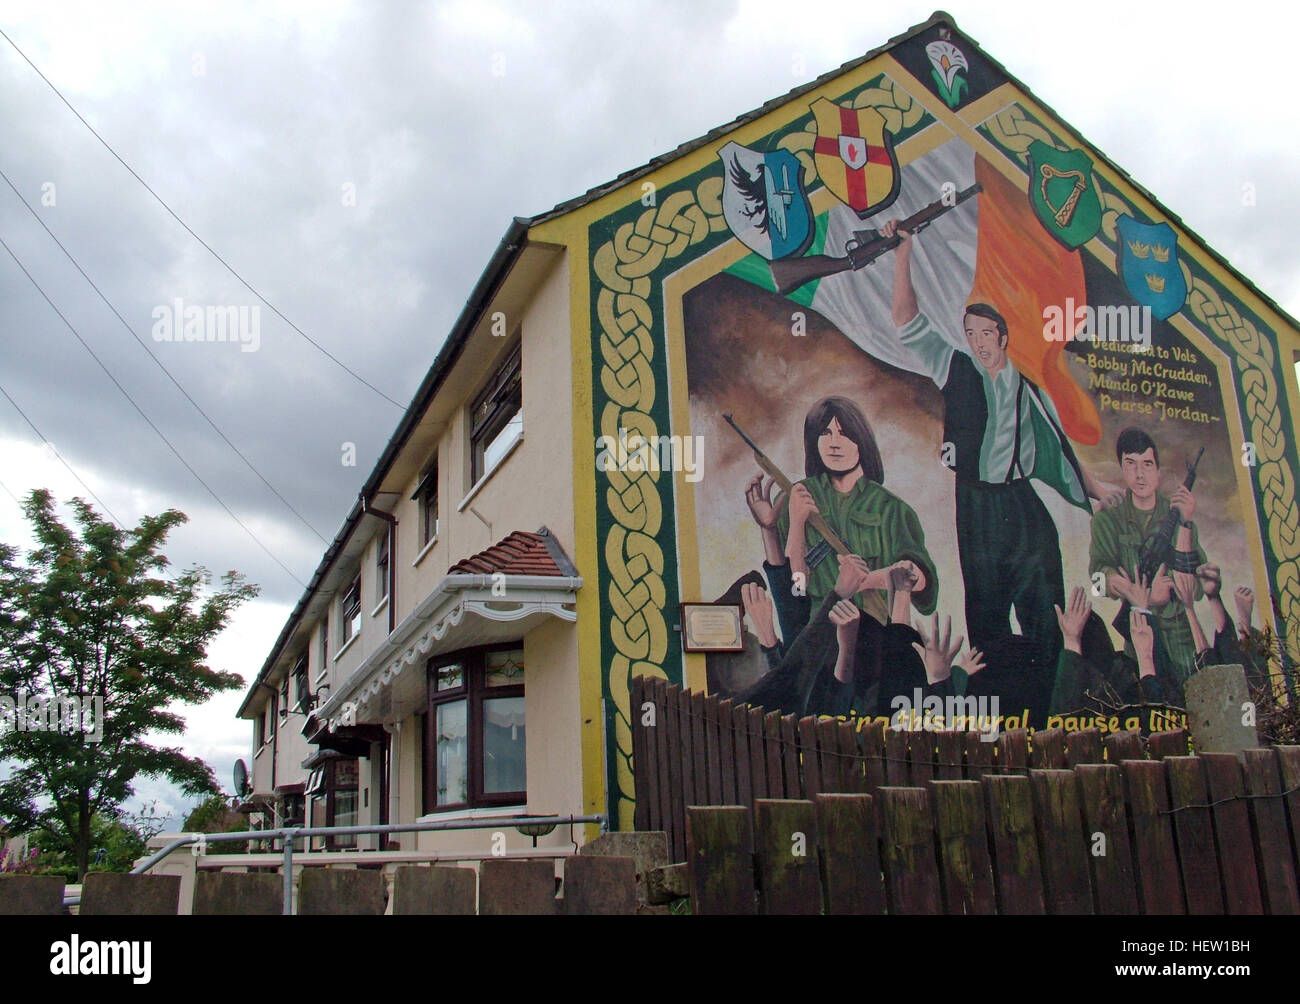 Road,painting,graffiti,resistance,IRA,peace,Northern Ireland,NI,UK,St,street,Eire,Irish,Republic,Irish Republic,conflict,Irish Republican Army,Political Change,on,council,house,gable end,Dedicated,to,Bobby McCrudden,Mundo O-Rawe,Pearse Jordan,Mundo ORawe,flag,rifle,gun,guns,GoTonySmith,@HotpixUK,Tony,Smith,UK,GB,Great,Britain,United,Kingdom,Irish,British,Ireland,problem,with,problem with,issue with,NI,Northern,Northern Ireland,Belfast,City,Centre,Art,Artists,the,troubles,The Troubles,Good Friday Agreement,Peace,honour,painting,wall,walls,tribute,republicanism,Fight,Justice,West,Beal,feirste,martyrs,social,tour,tourism,tourists,urban,six,counties,6,backdrop,county,Antrim,occupation,good,Friday,agreement,peace,reconciliation,IRA,terror,terrorists,genocide,Irish volunteers,Irish,volunteers,Belfast streets,catholic,community,catholics,Buy Pictures of,Buy Images Of,Images of,Stock Images,Tony Smith,United Kingdom,Great Britain,British Isles,republican cause,Belfast Catholic Community